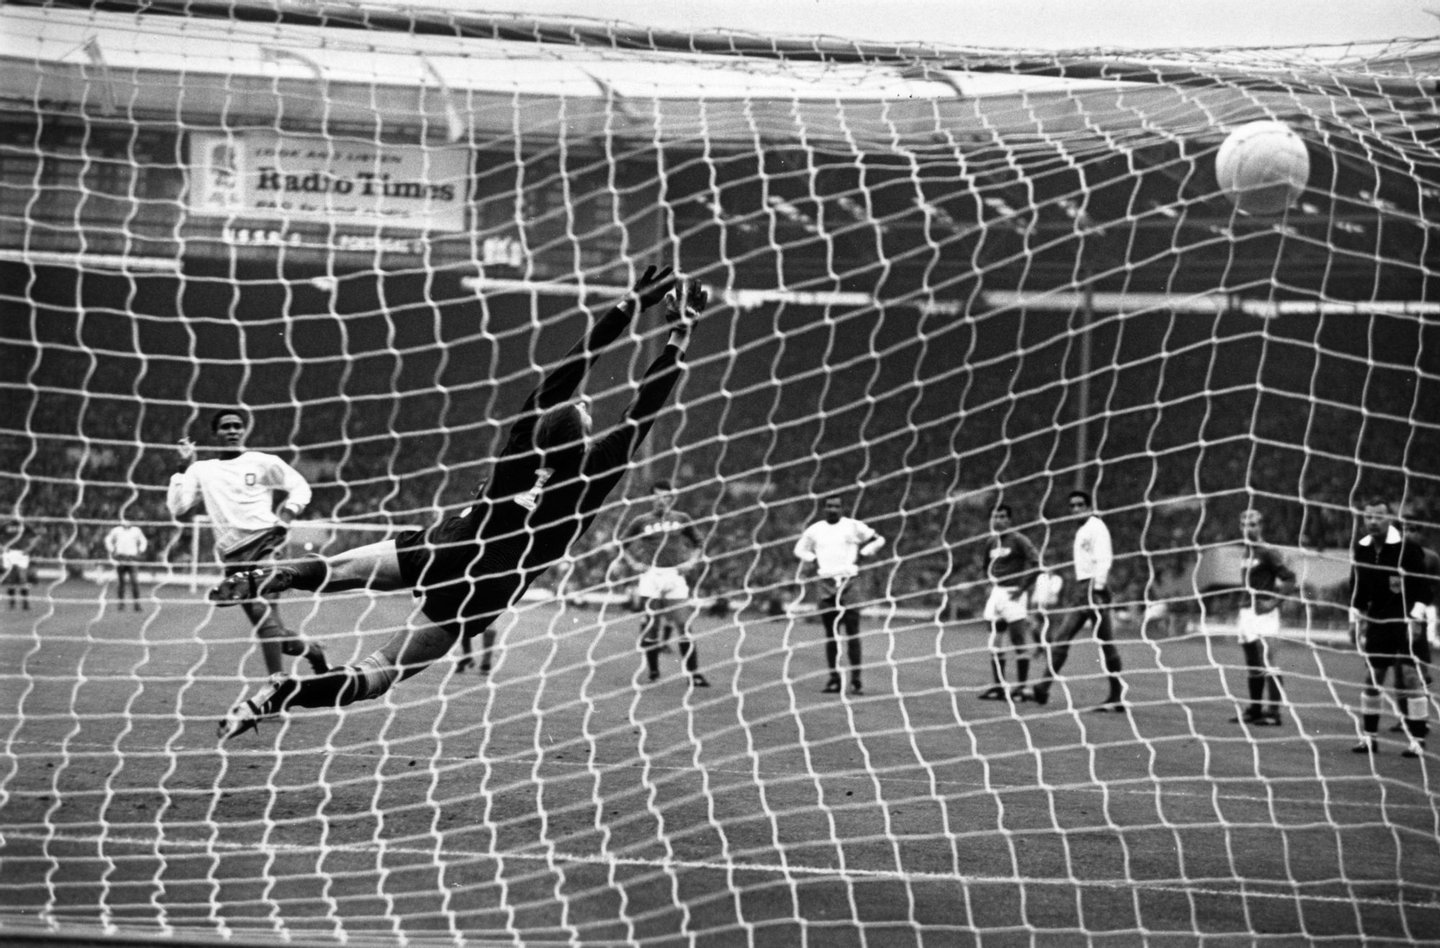 29th July 1966: Portugal's Eusebio (white shirt) hammers his penalty kick past Russia's Lev Yashin, to put his country in the lead during the World Cup third place play off game at Wembley Stadium. (Photo by Keystone/Getty Images)